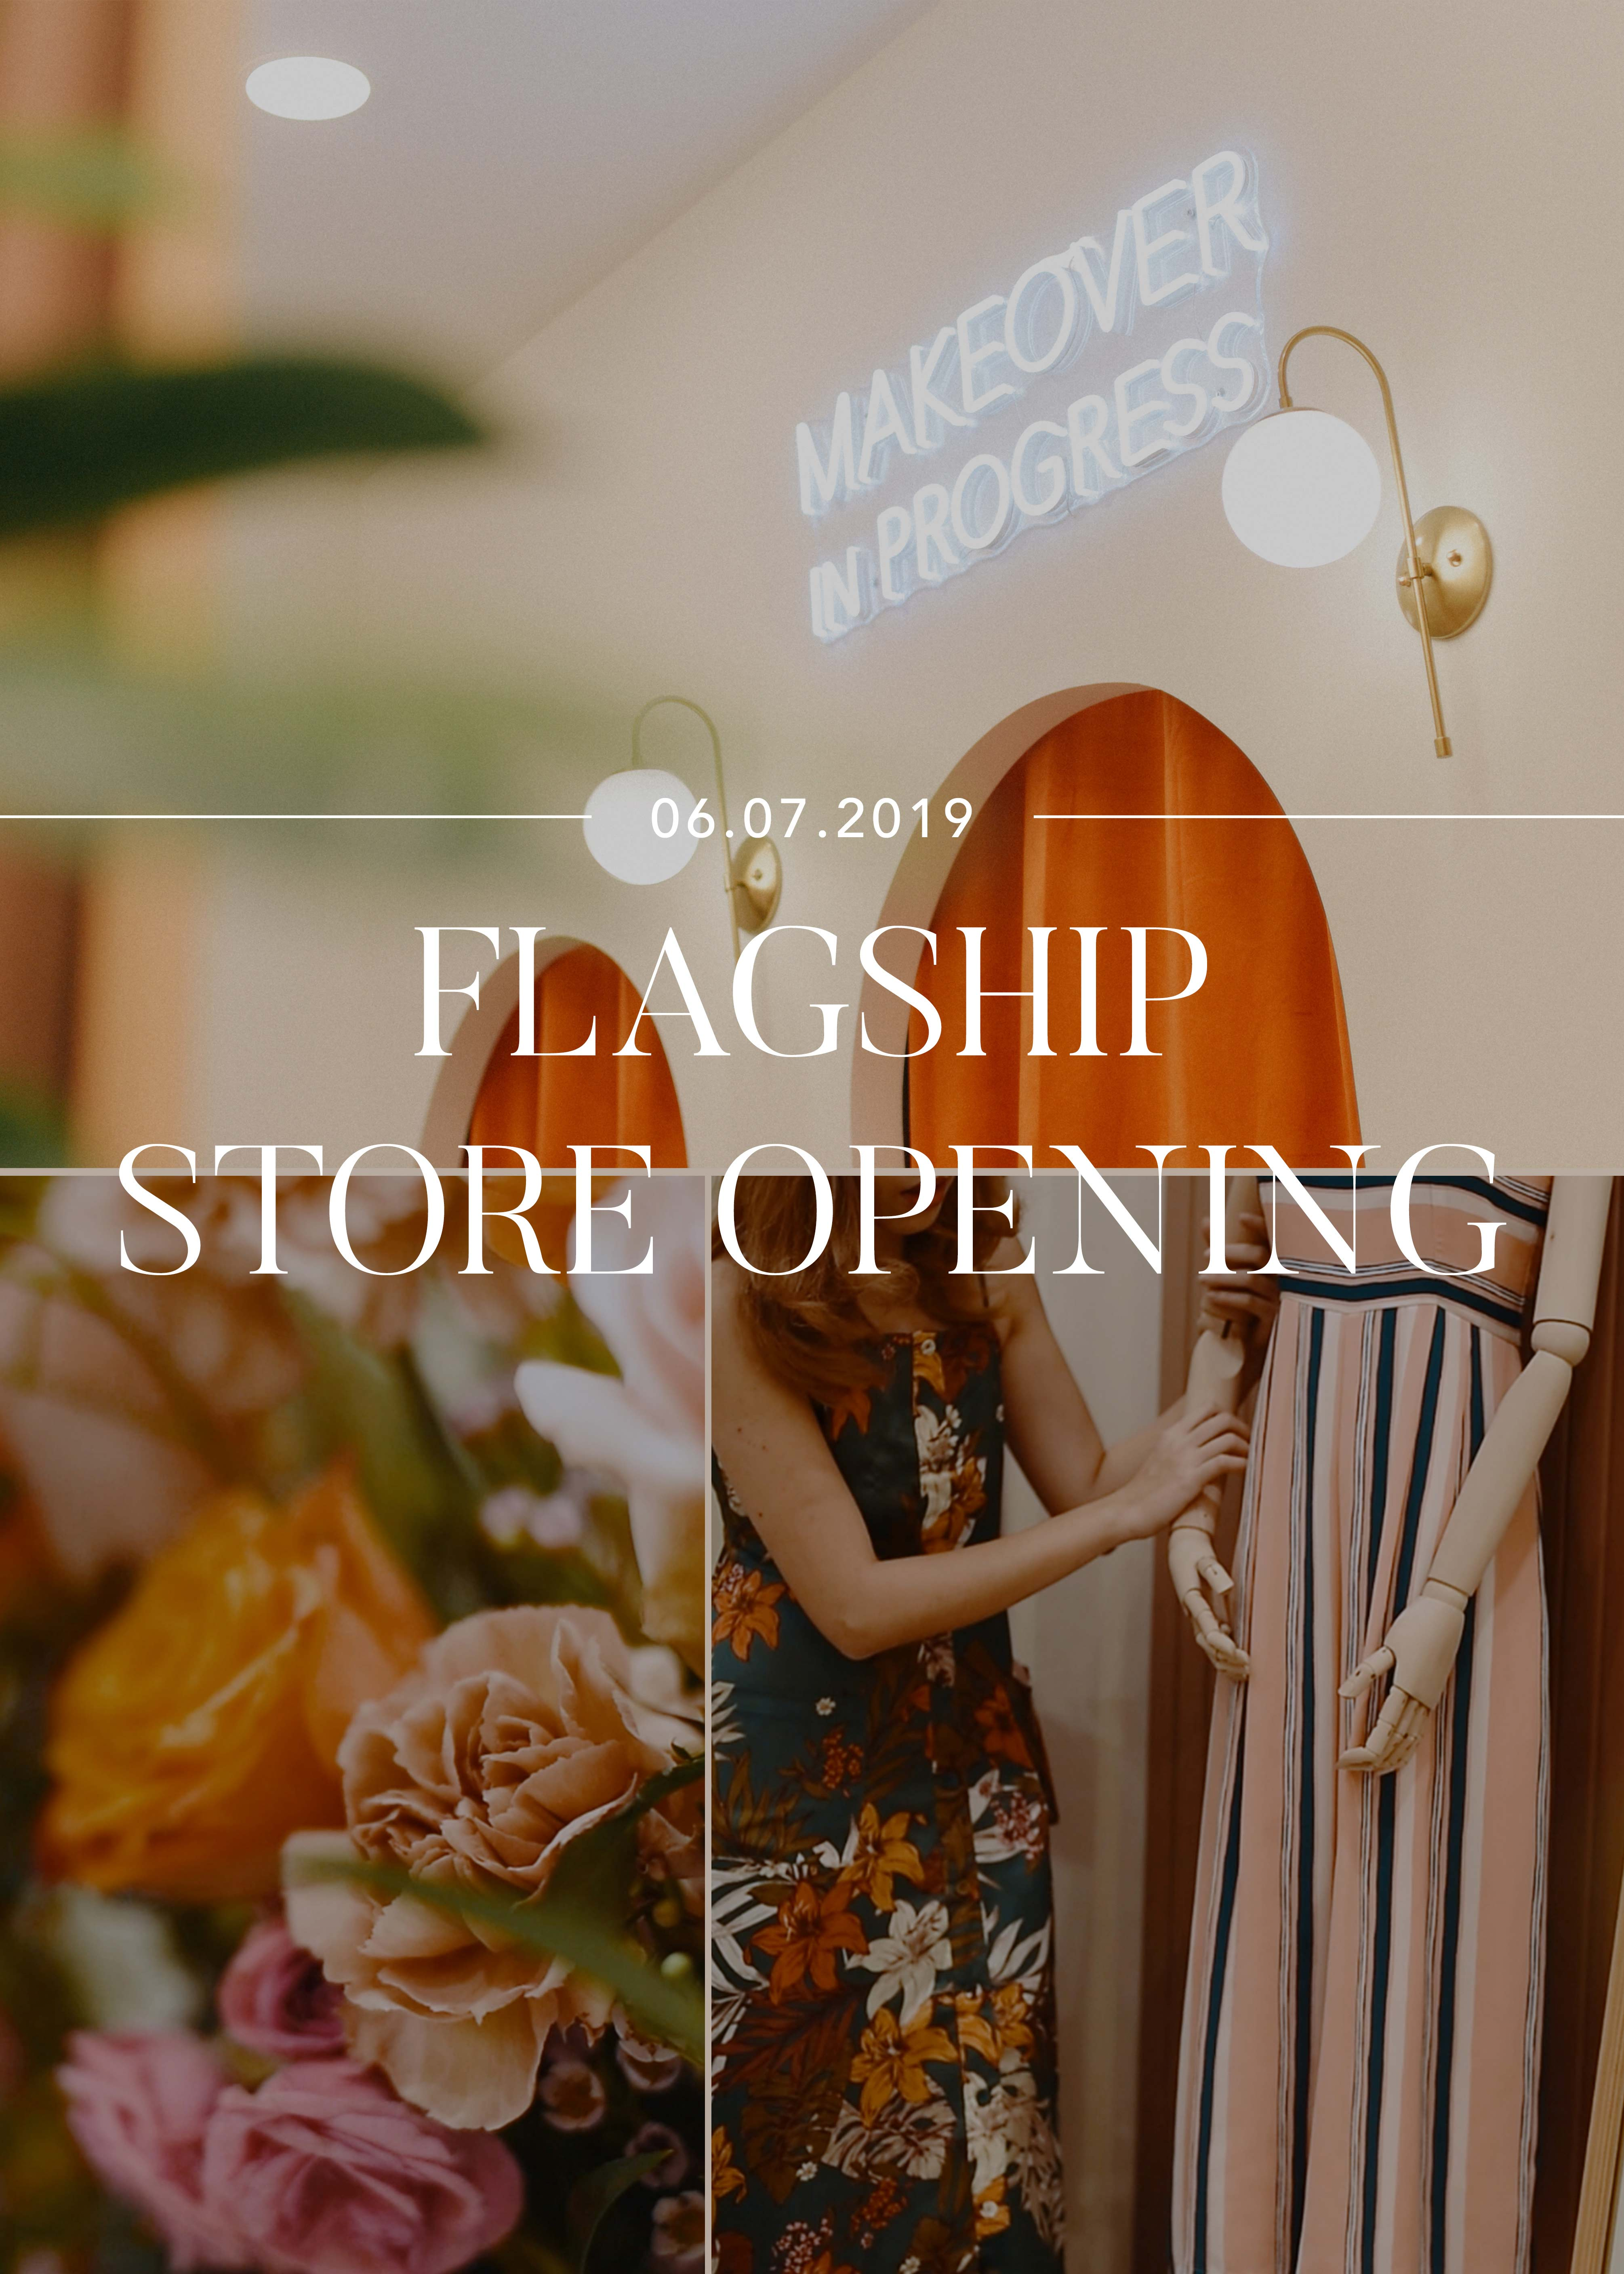 FLAGSHIP STORE OPENING